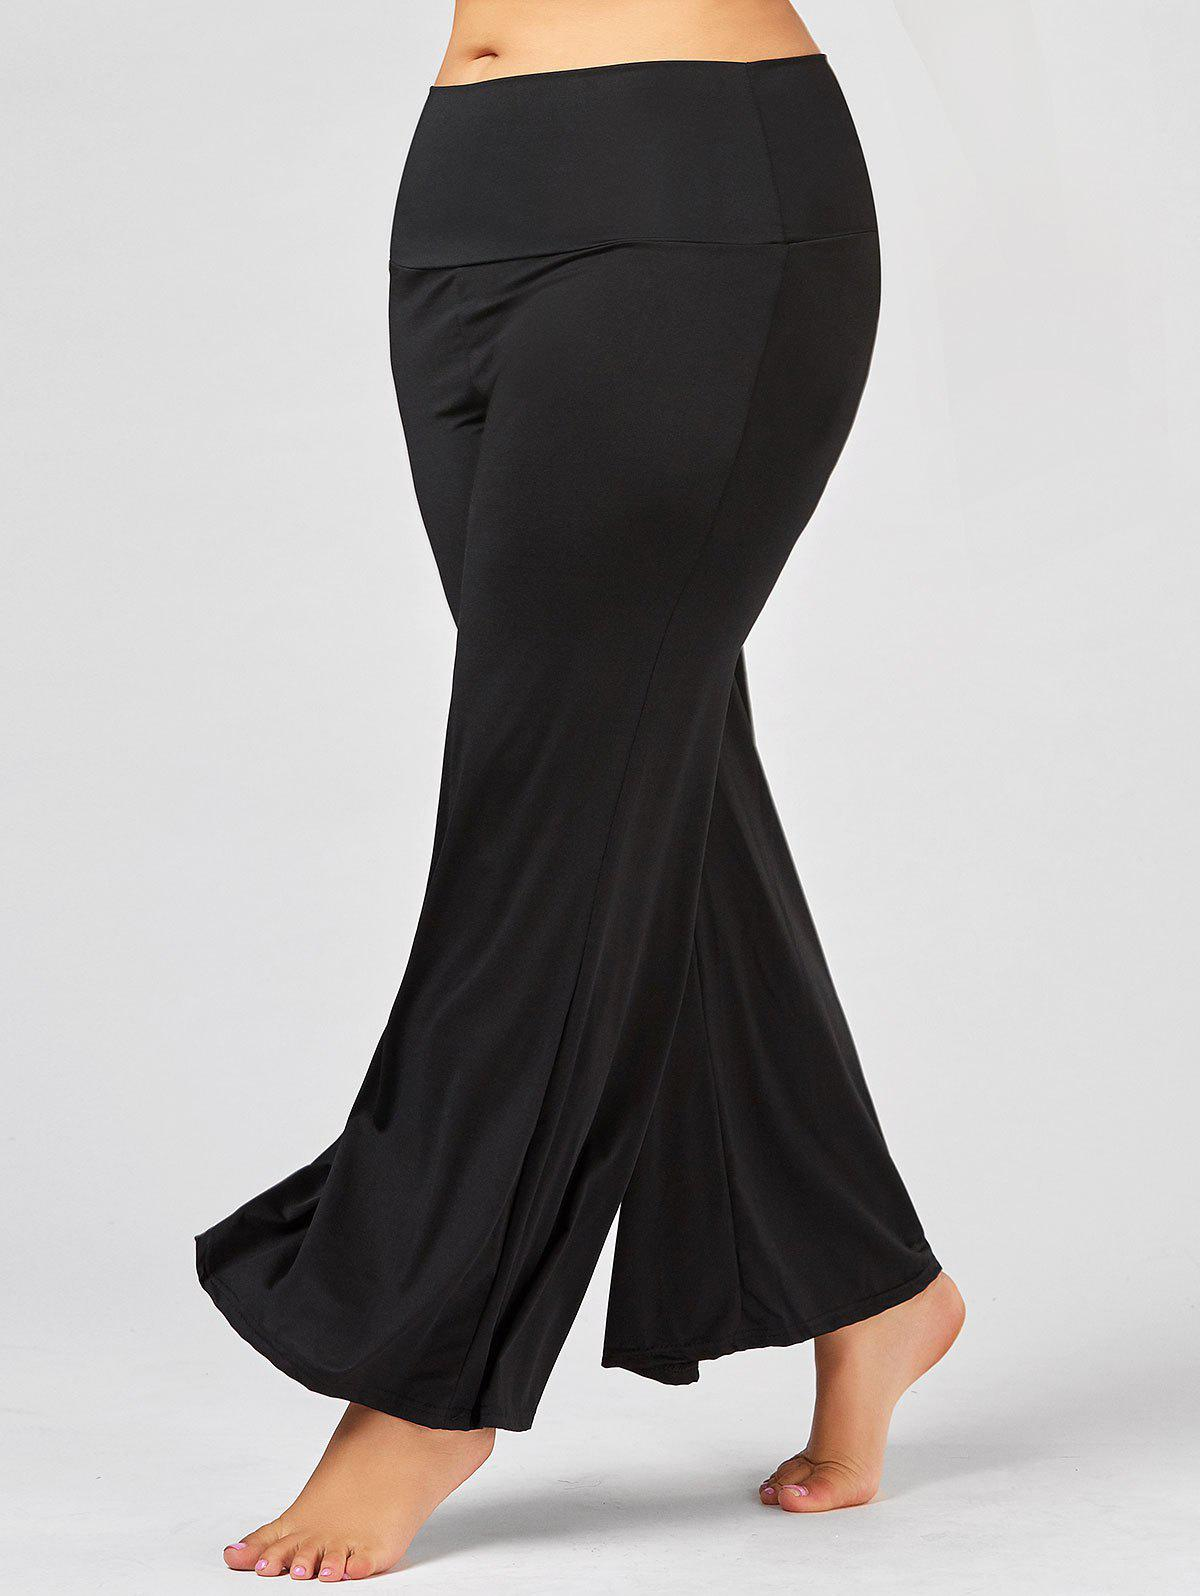 Plus Size Maxi High Rise Palazzo PantsWOMEN<br><br>Size: XL; Color: BLACK; Style: Fashion; Length: Overlength; Material: Cotton,Polyester; Fit Type: Loose; Waist Type: High; Closure Type: Elastic Waist; Pattern Type: Solid; Pant Style: Wide Leg Pants; Elasticity: Elastic; Weight: 0.2900kg; Package Contents: 1 x Pants;